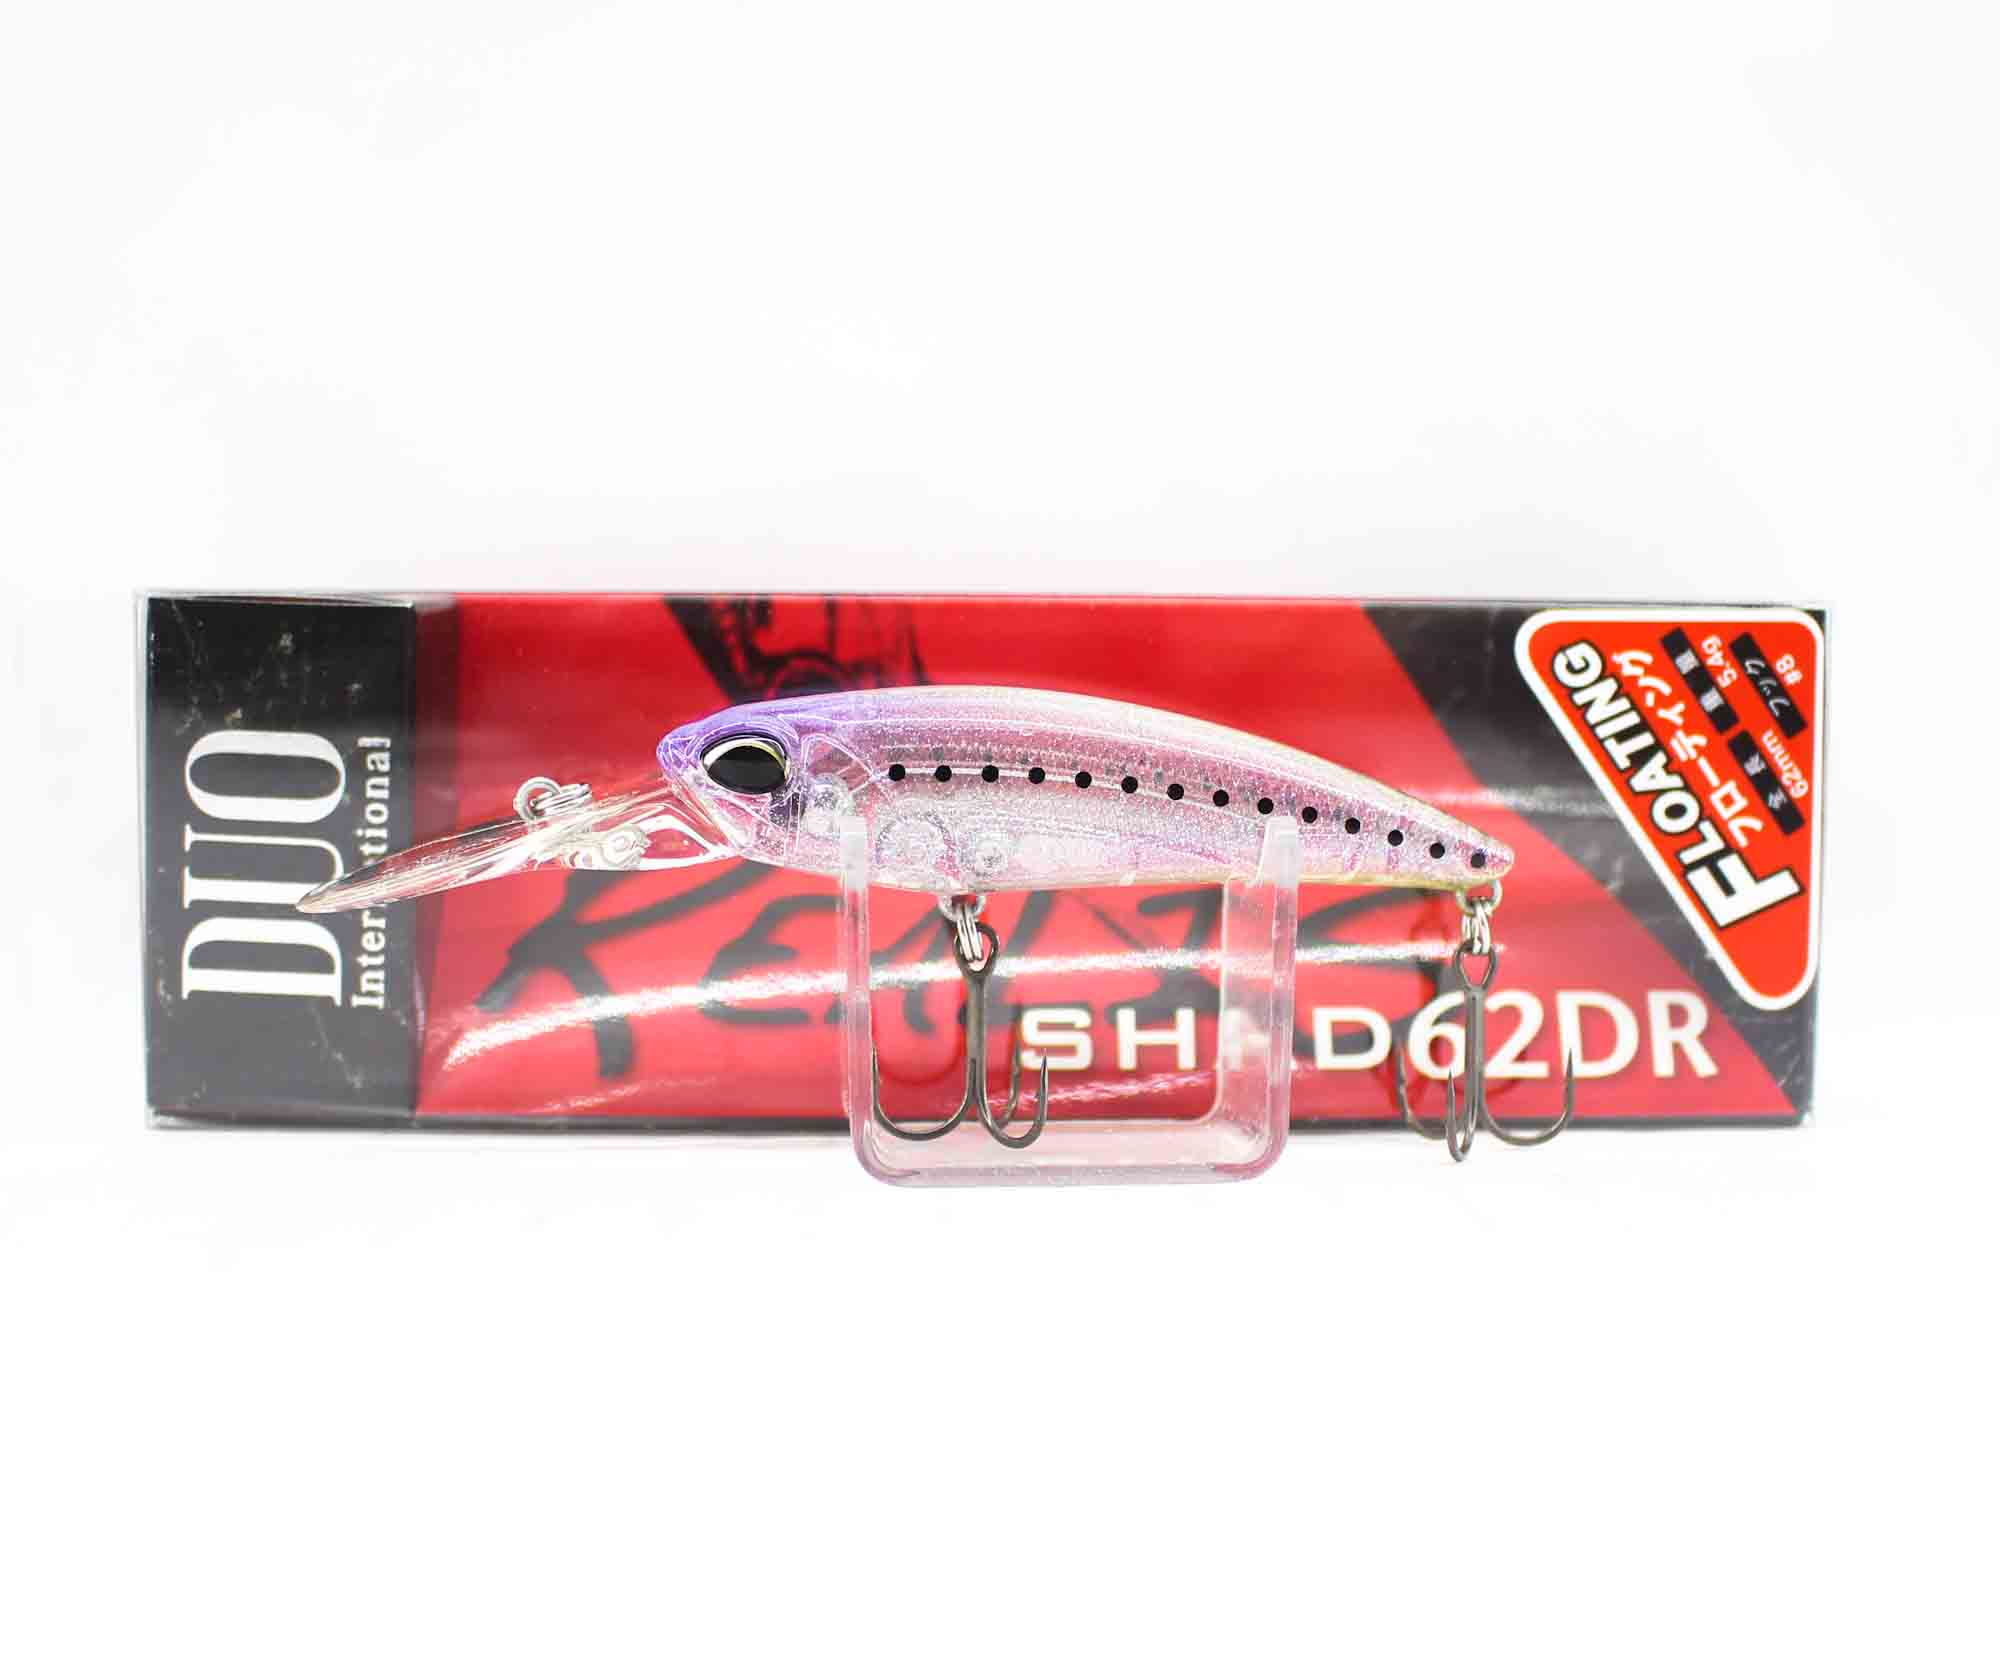 Duo Realis Shad 62 DR F Floating Lure CCCZ183 (7176)